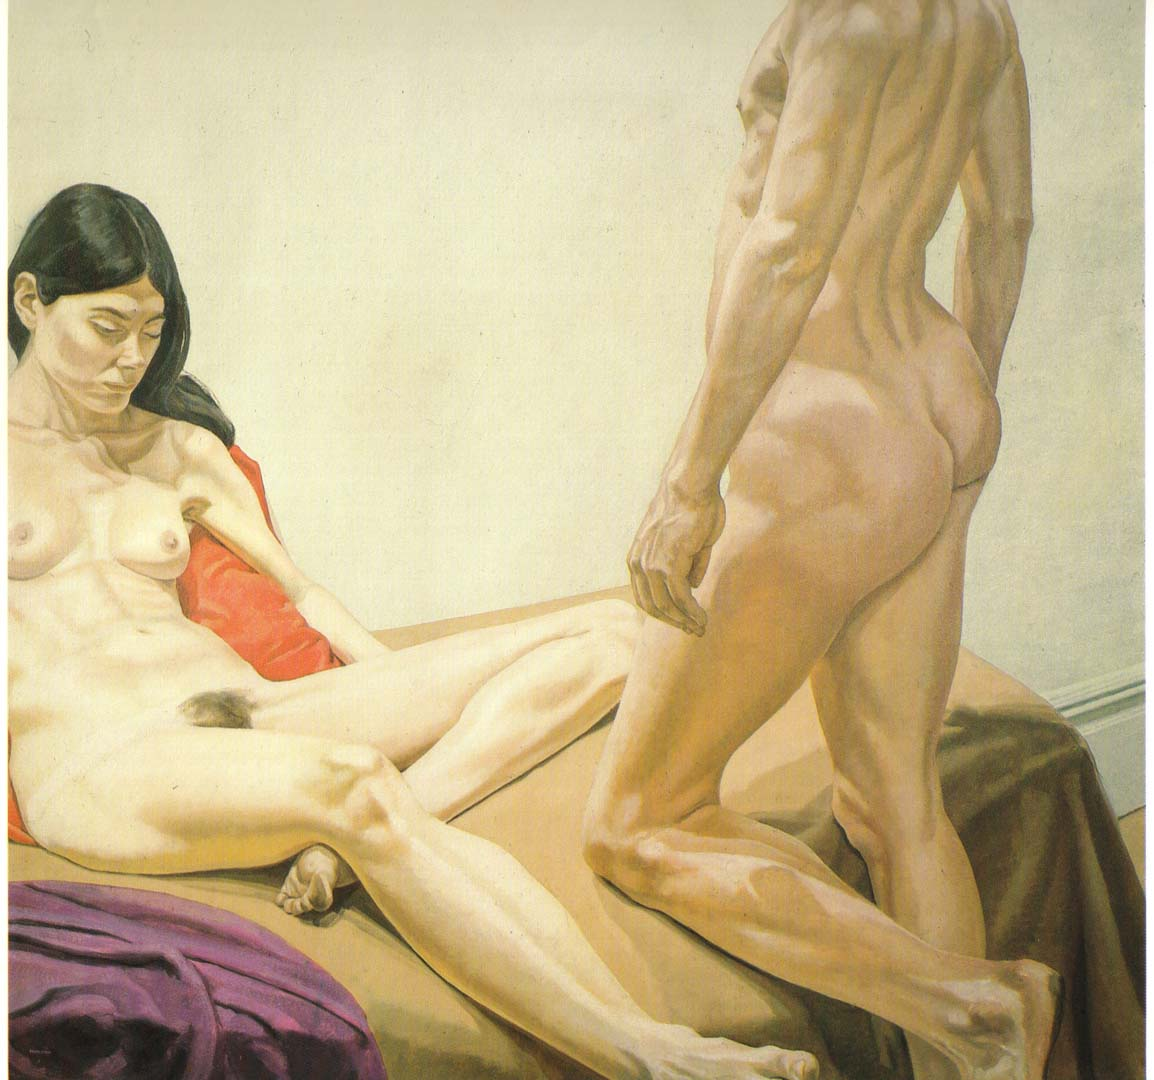 1968 Male and Female on Red and Purple Drapes Oil on Canvas 75.5 x 76